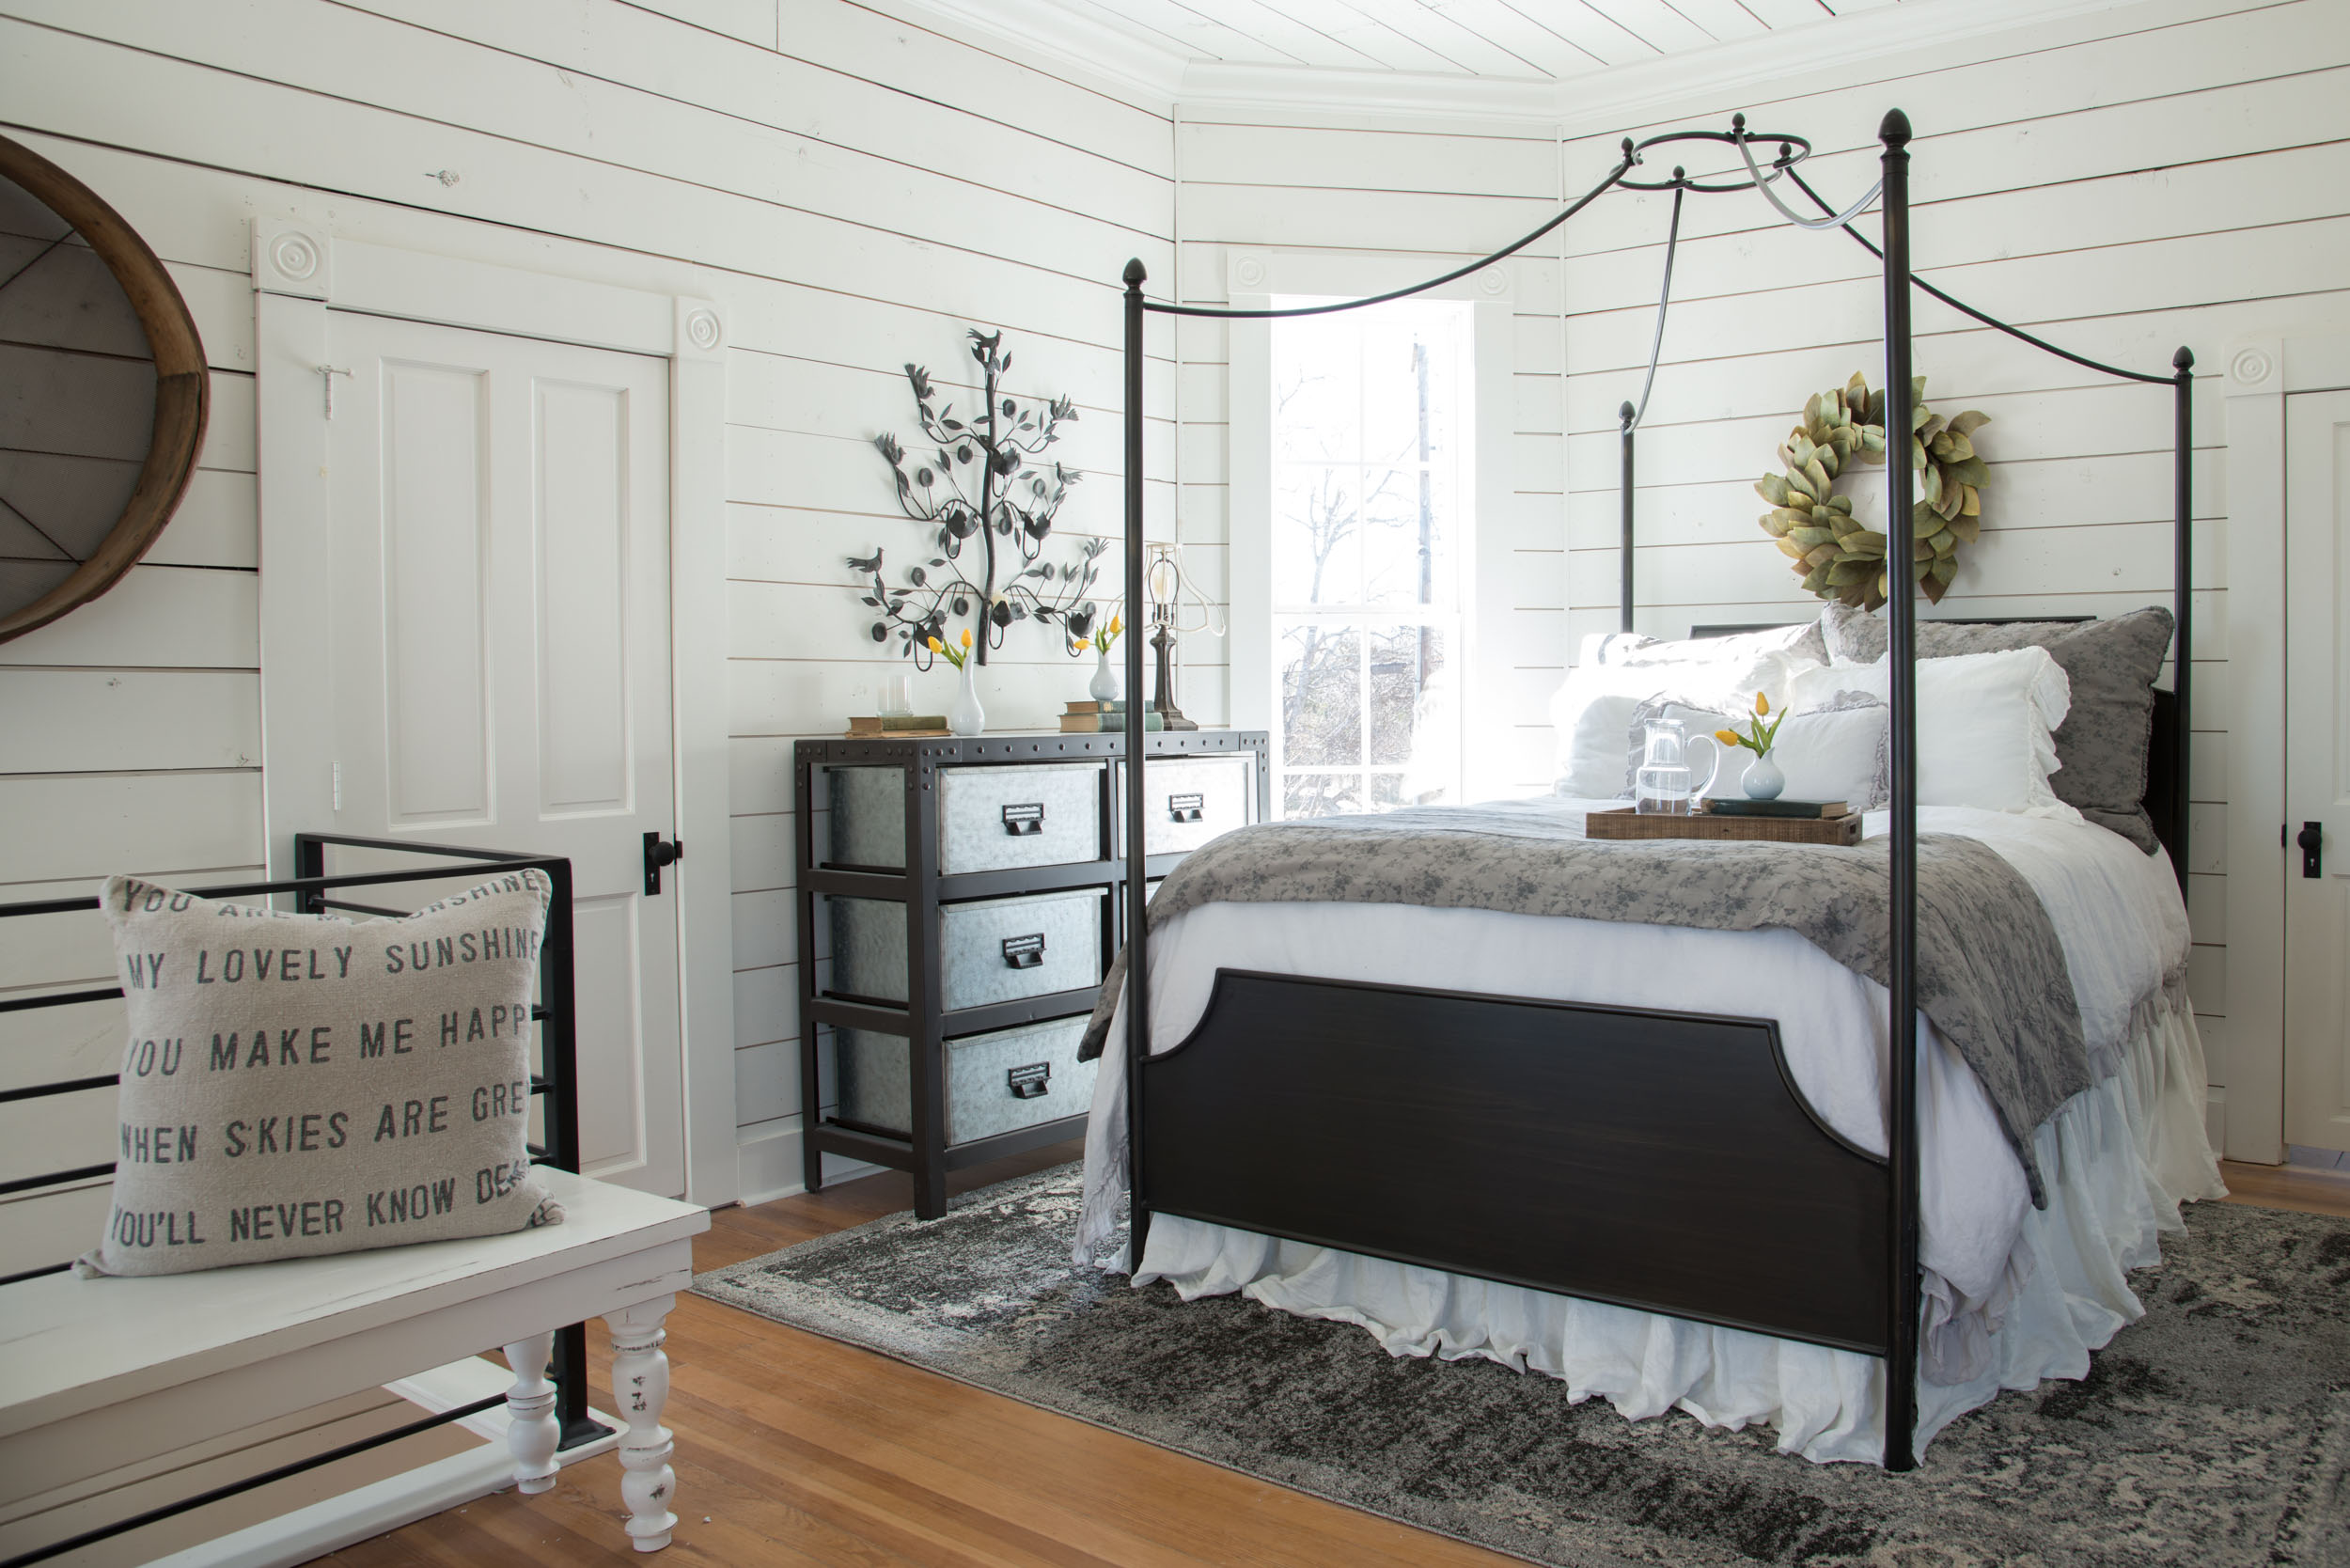 The awesome cozy bedroom in the Fixer Upper Magnolia House